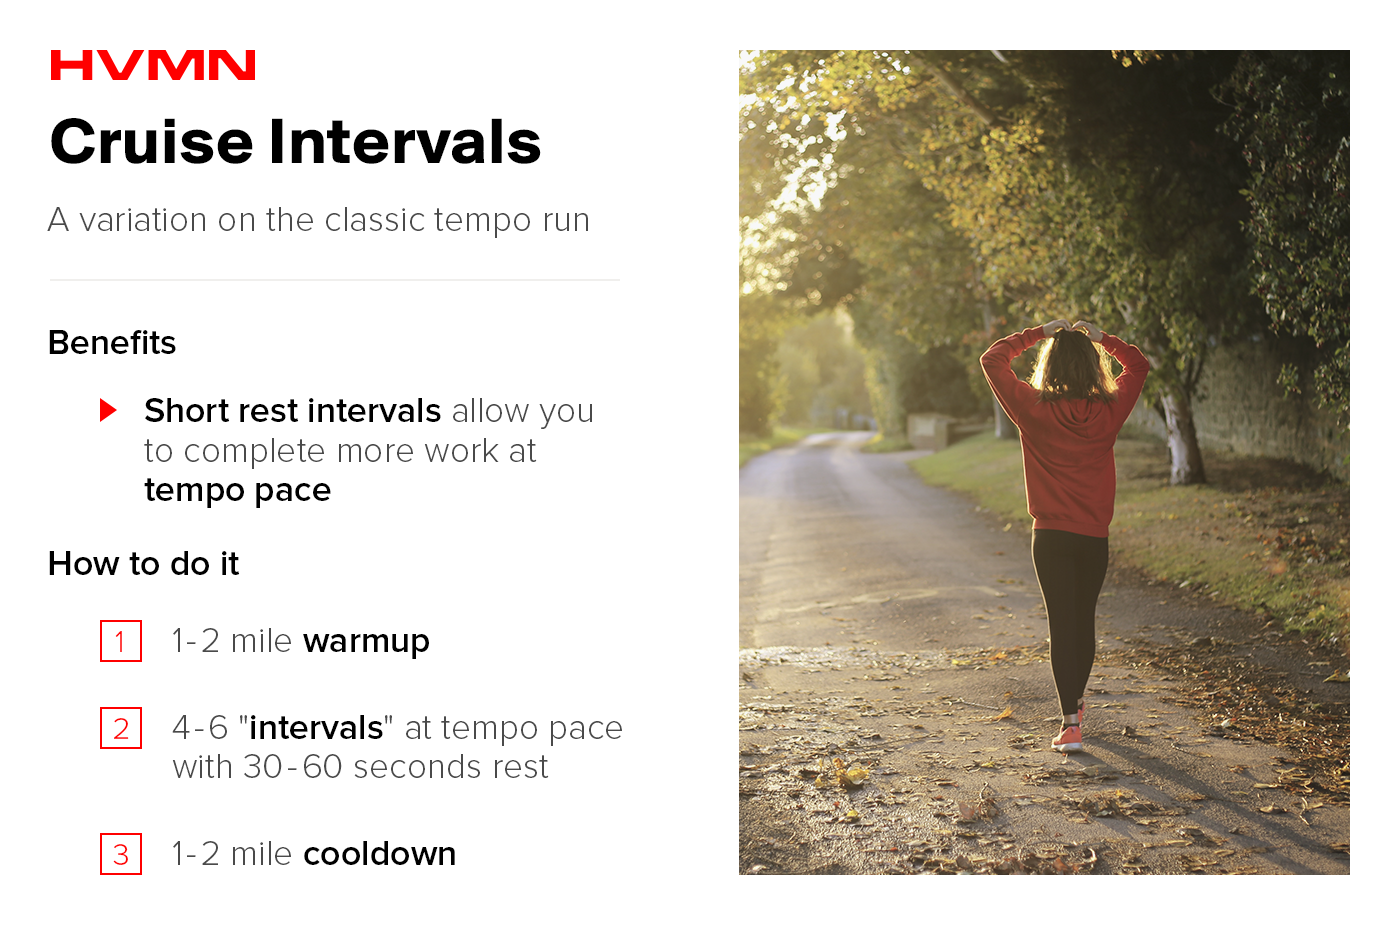 "This image shows a woman who is walking along a paved trail in the woods. She has her hands over her head as if she is recovering from a hard run. This image describes the benefits of cruise intervals, and how to do them. The benefits of cruise intervals are that the short rest intervals allow you to complete more work at tempo pace. The ""How to do it"" section says to 1. Start with a 1-2 mile warmup. 2. Run 4-6 intervals at tempo pace, with 30-60 seconds of rest in between. 3. Do a 1-2 mile cooldown."